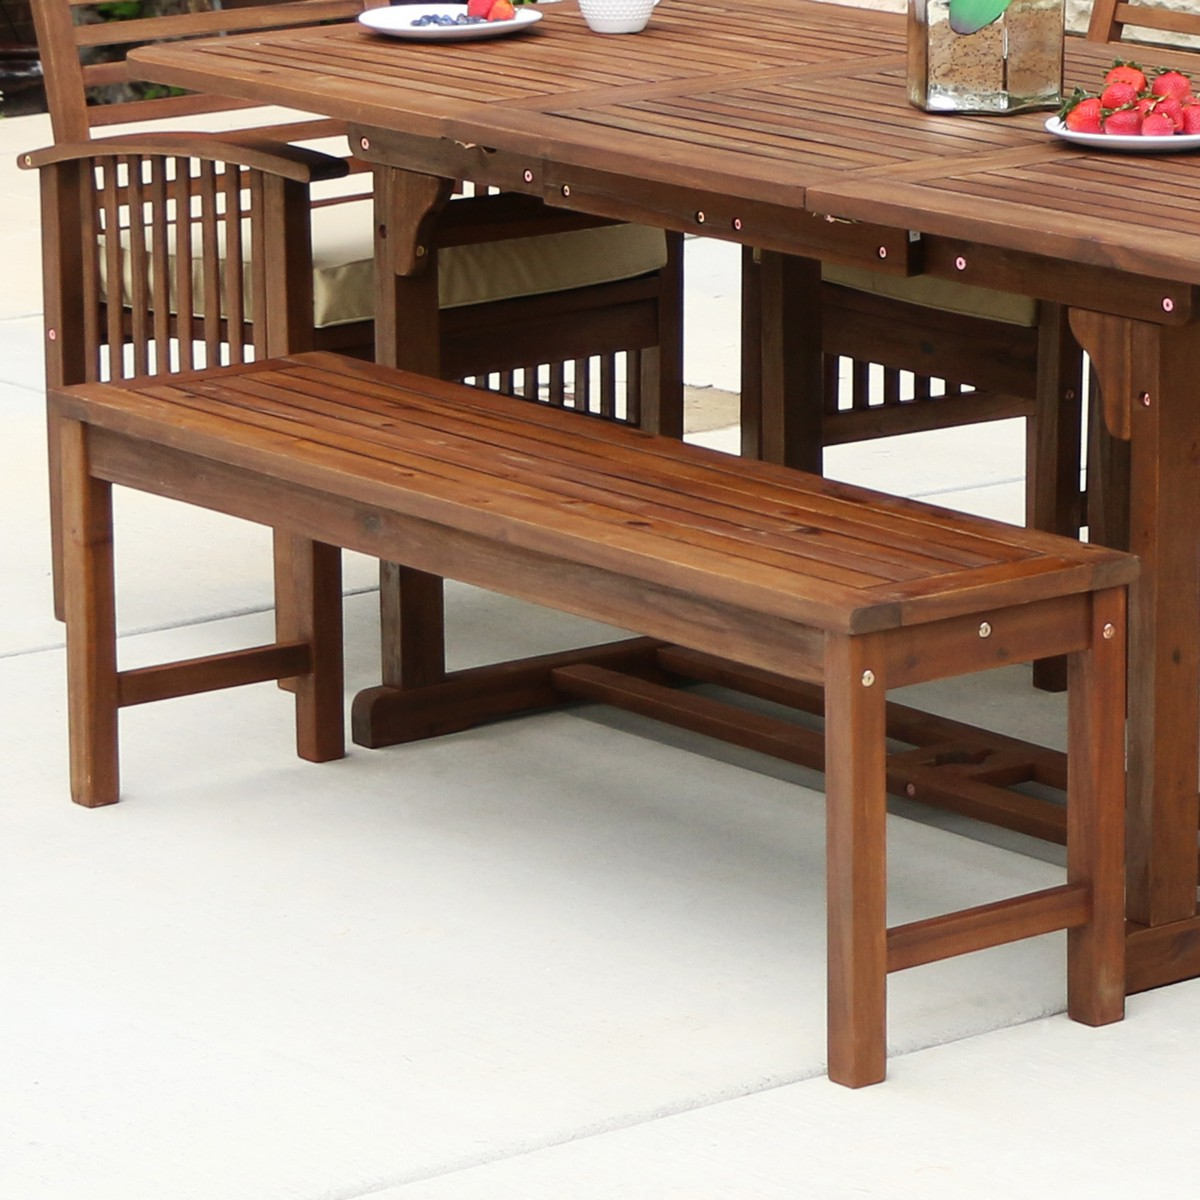 Acacia Wood Patio Bench In Dark Brown Solid Acacia